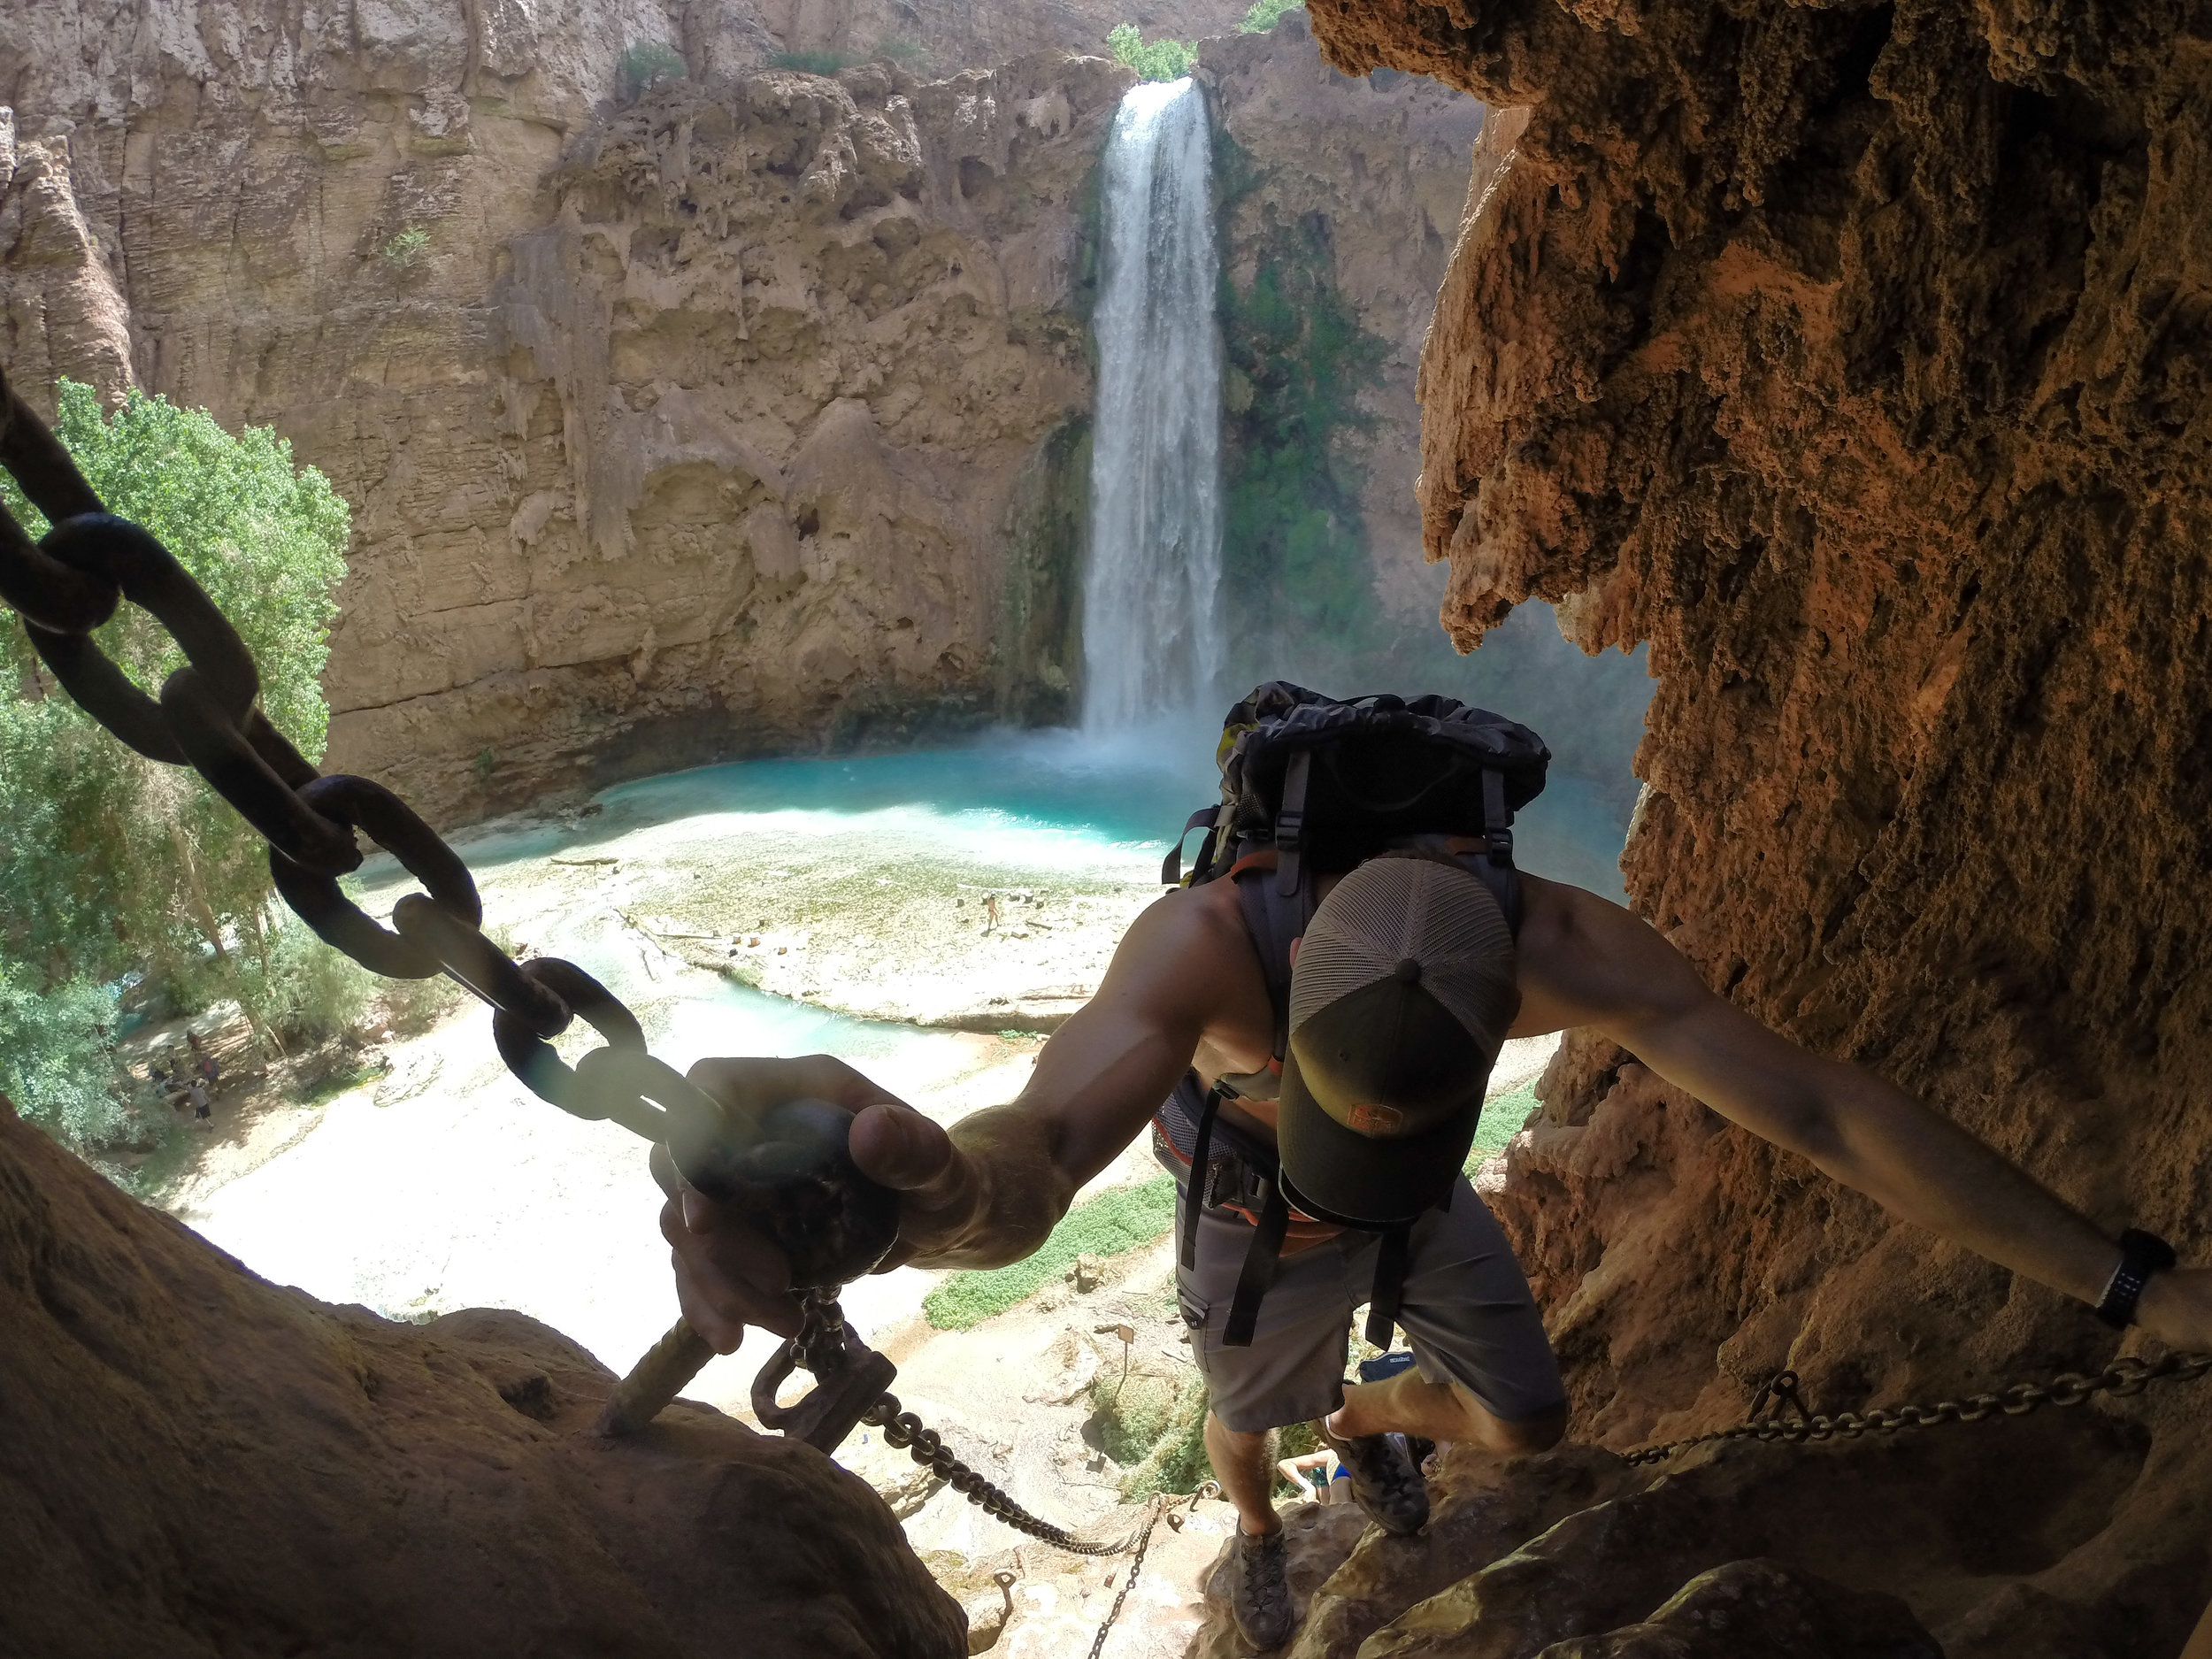 The only way down to Mooney Falls. A wet, muddy cliff face, fixed with chains and ladders to aid the descent.